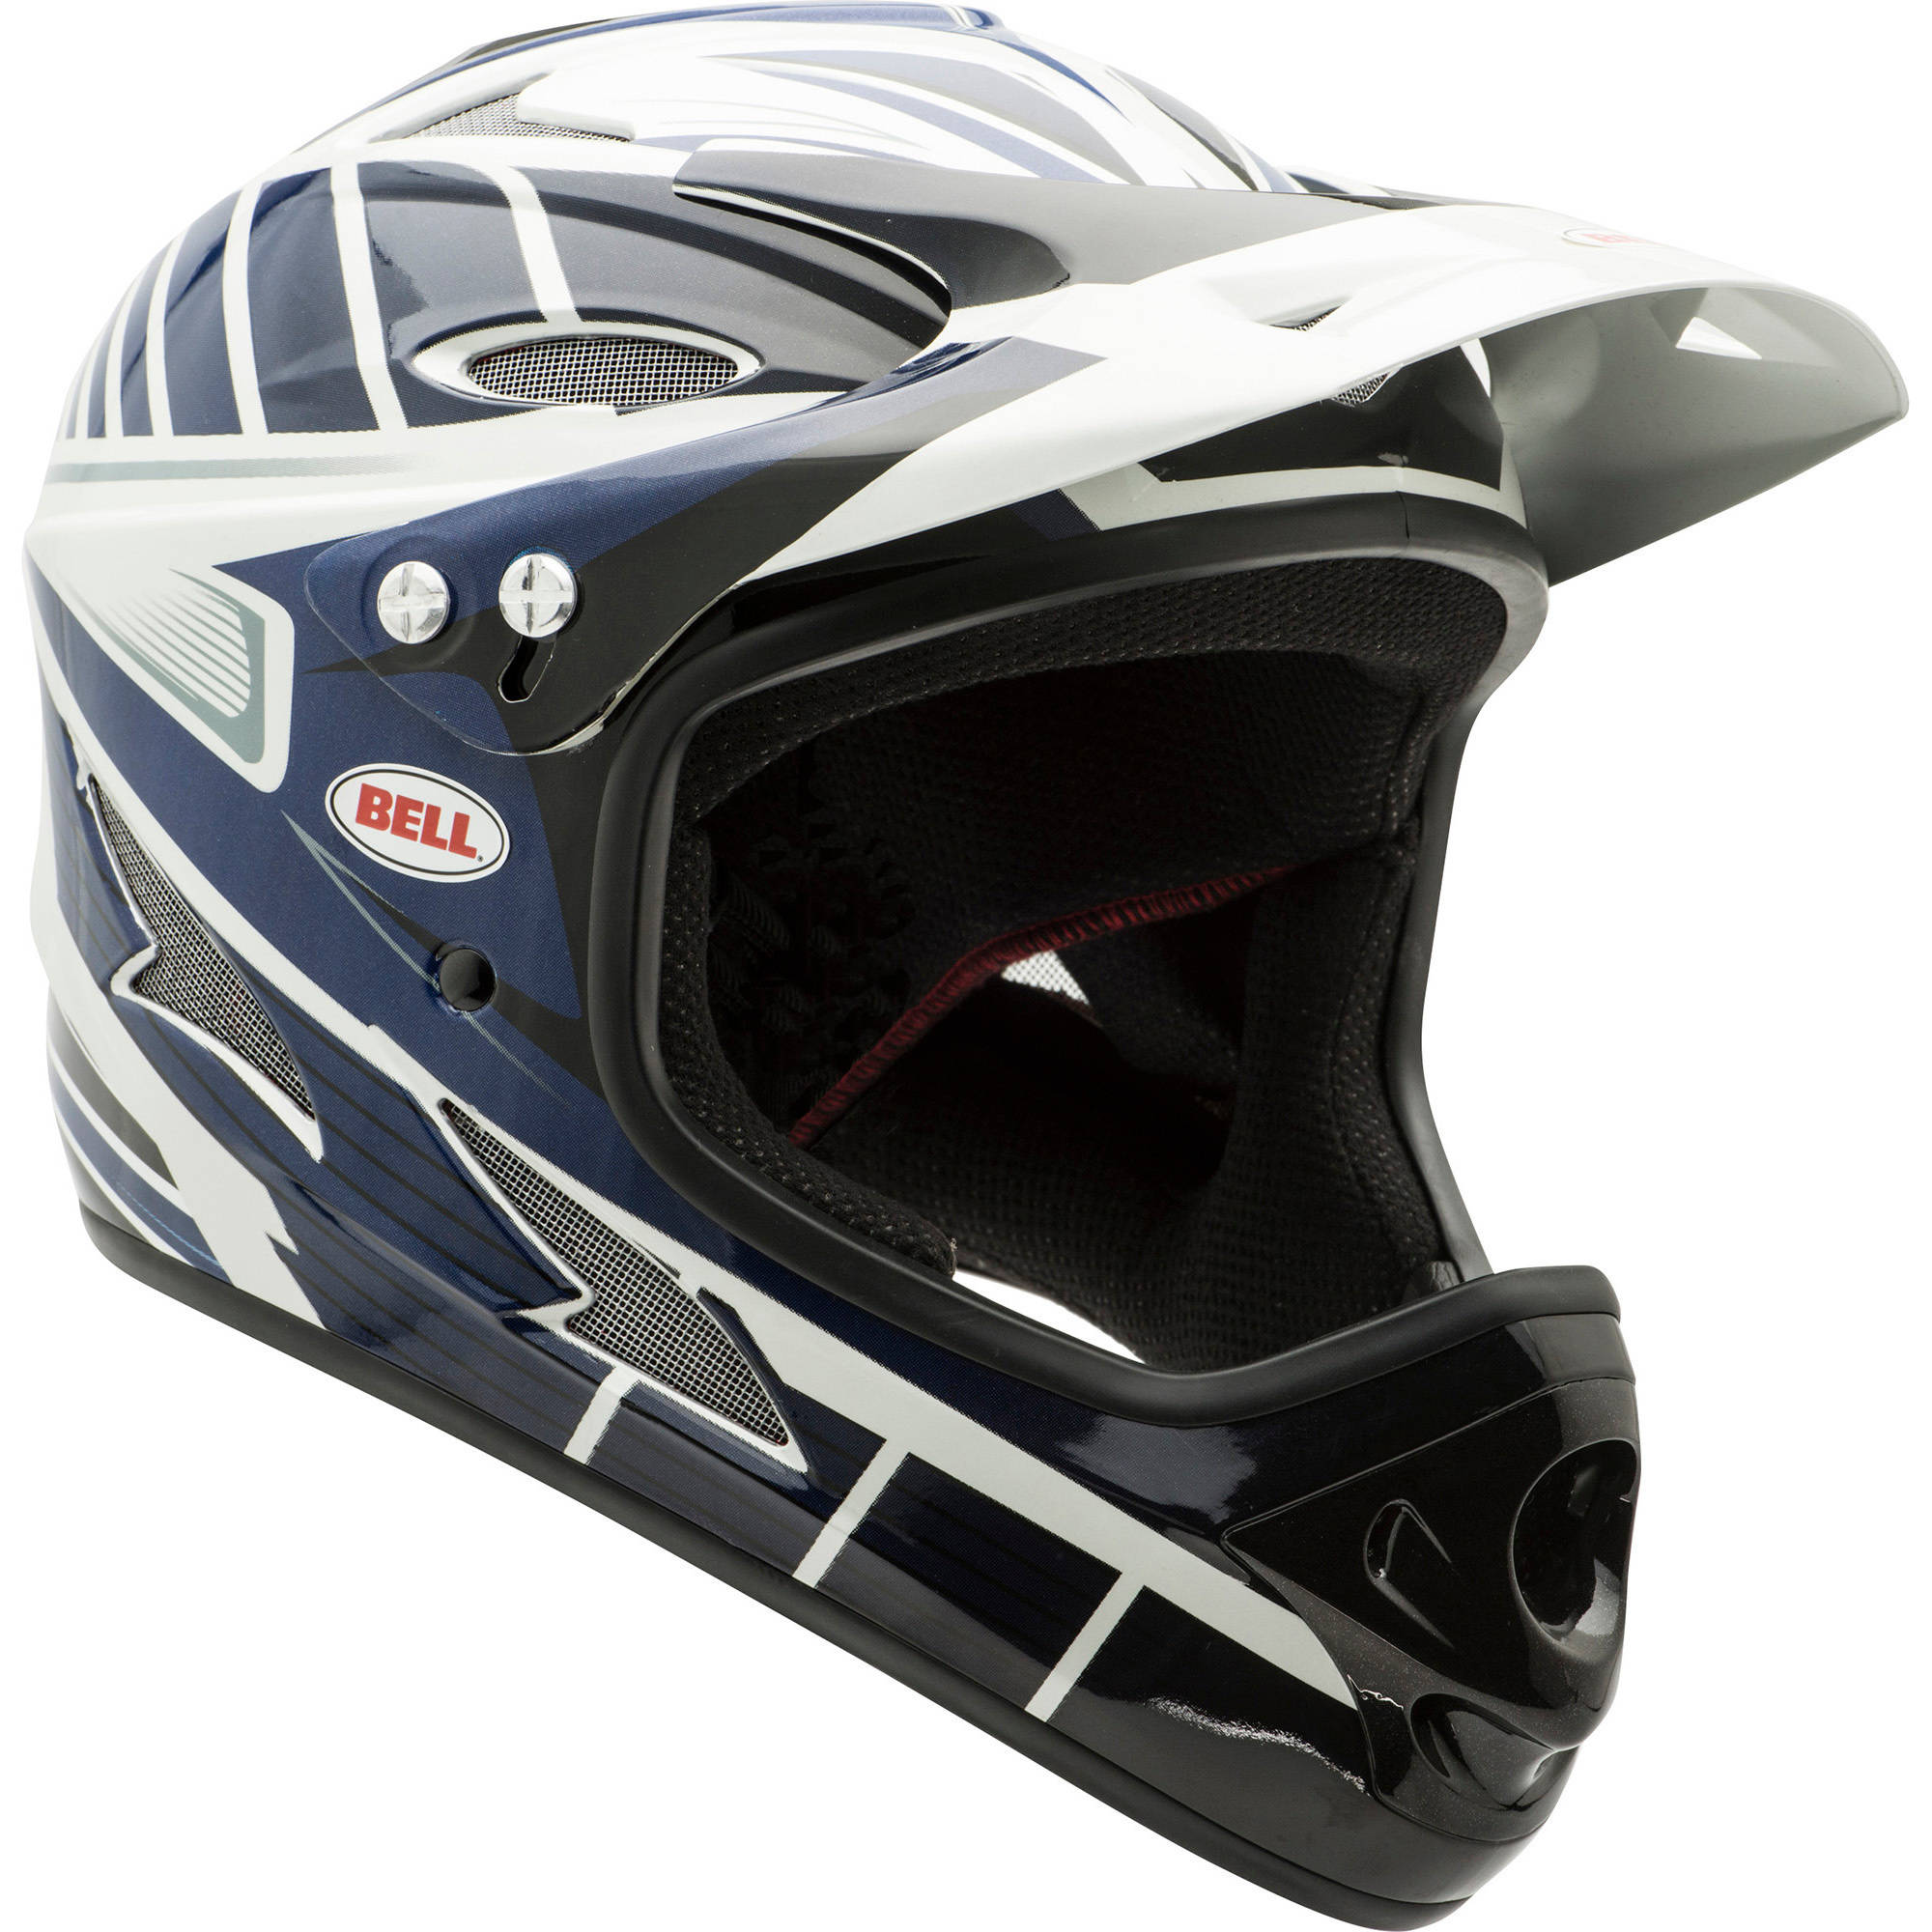 Bell Full Face Helmet >> Bell Exodus Full Face Bike Helmet W Chinbar Black Blue White